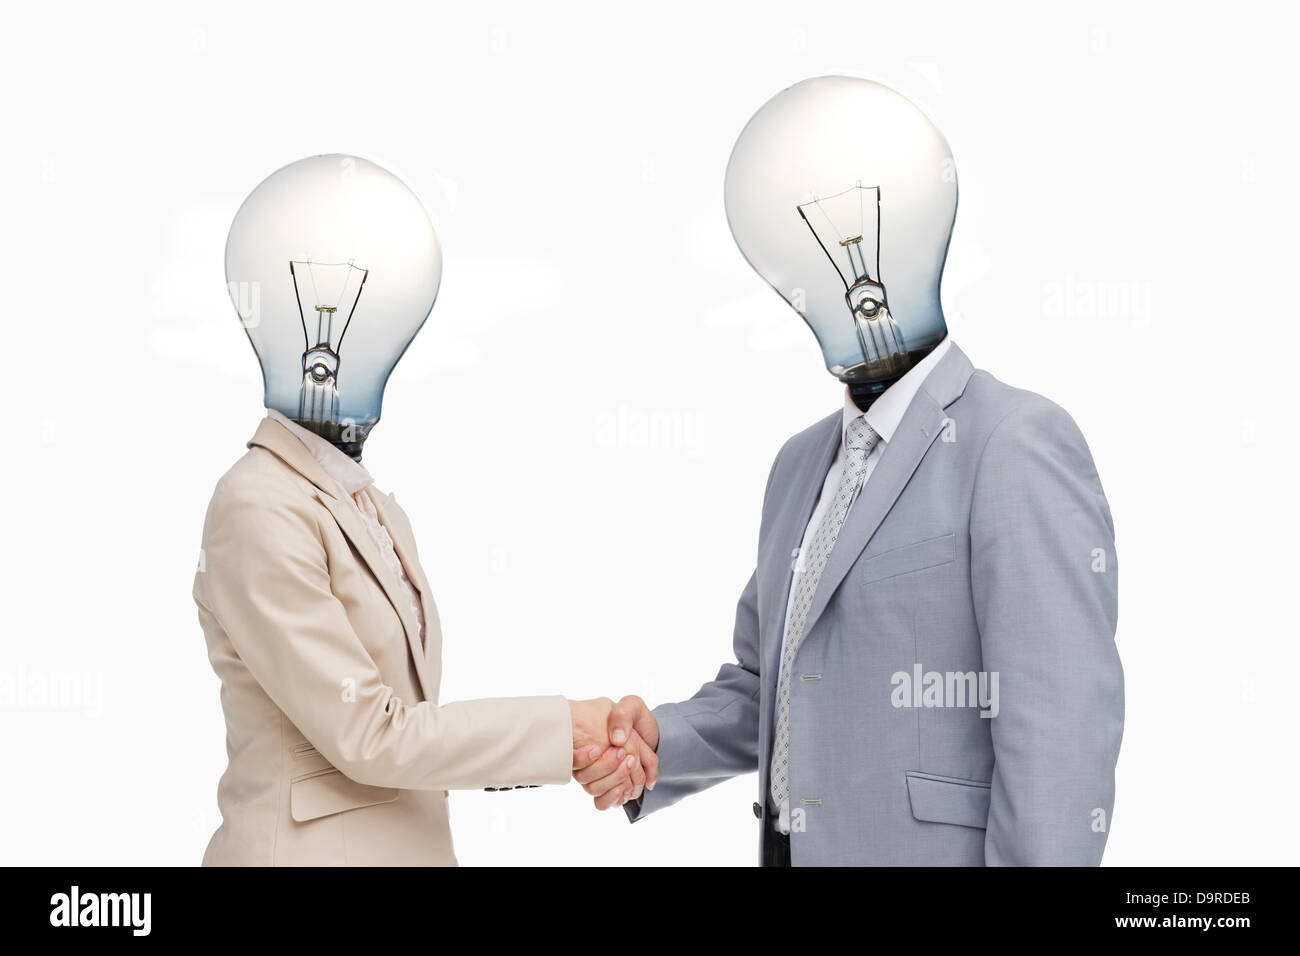 Business people with lightbulb heads greeting with a handshake - Stock Image